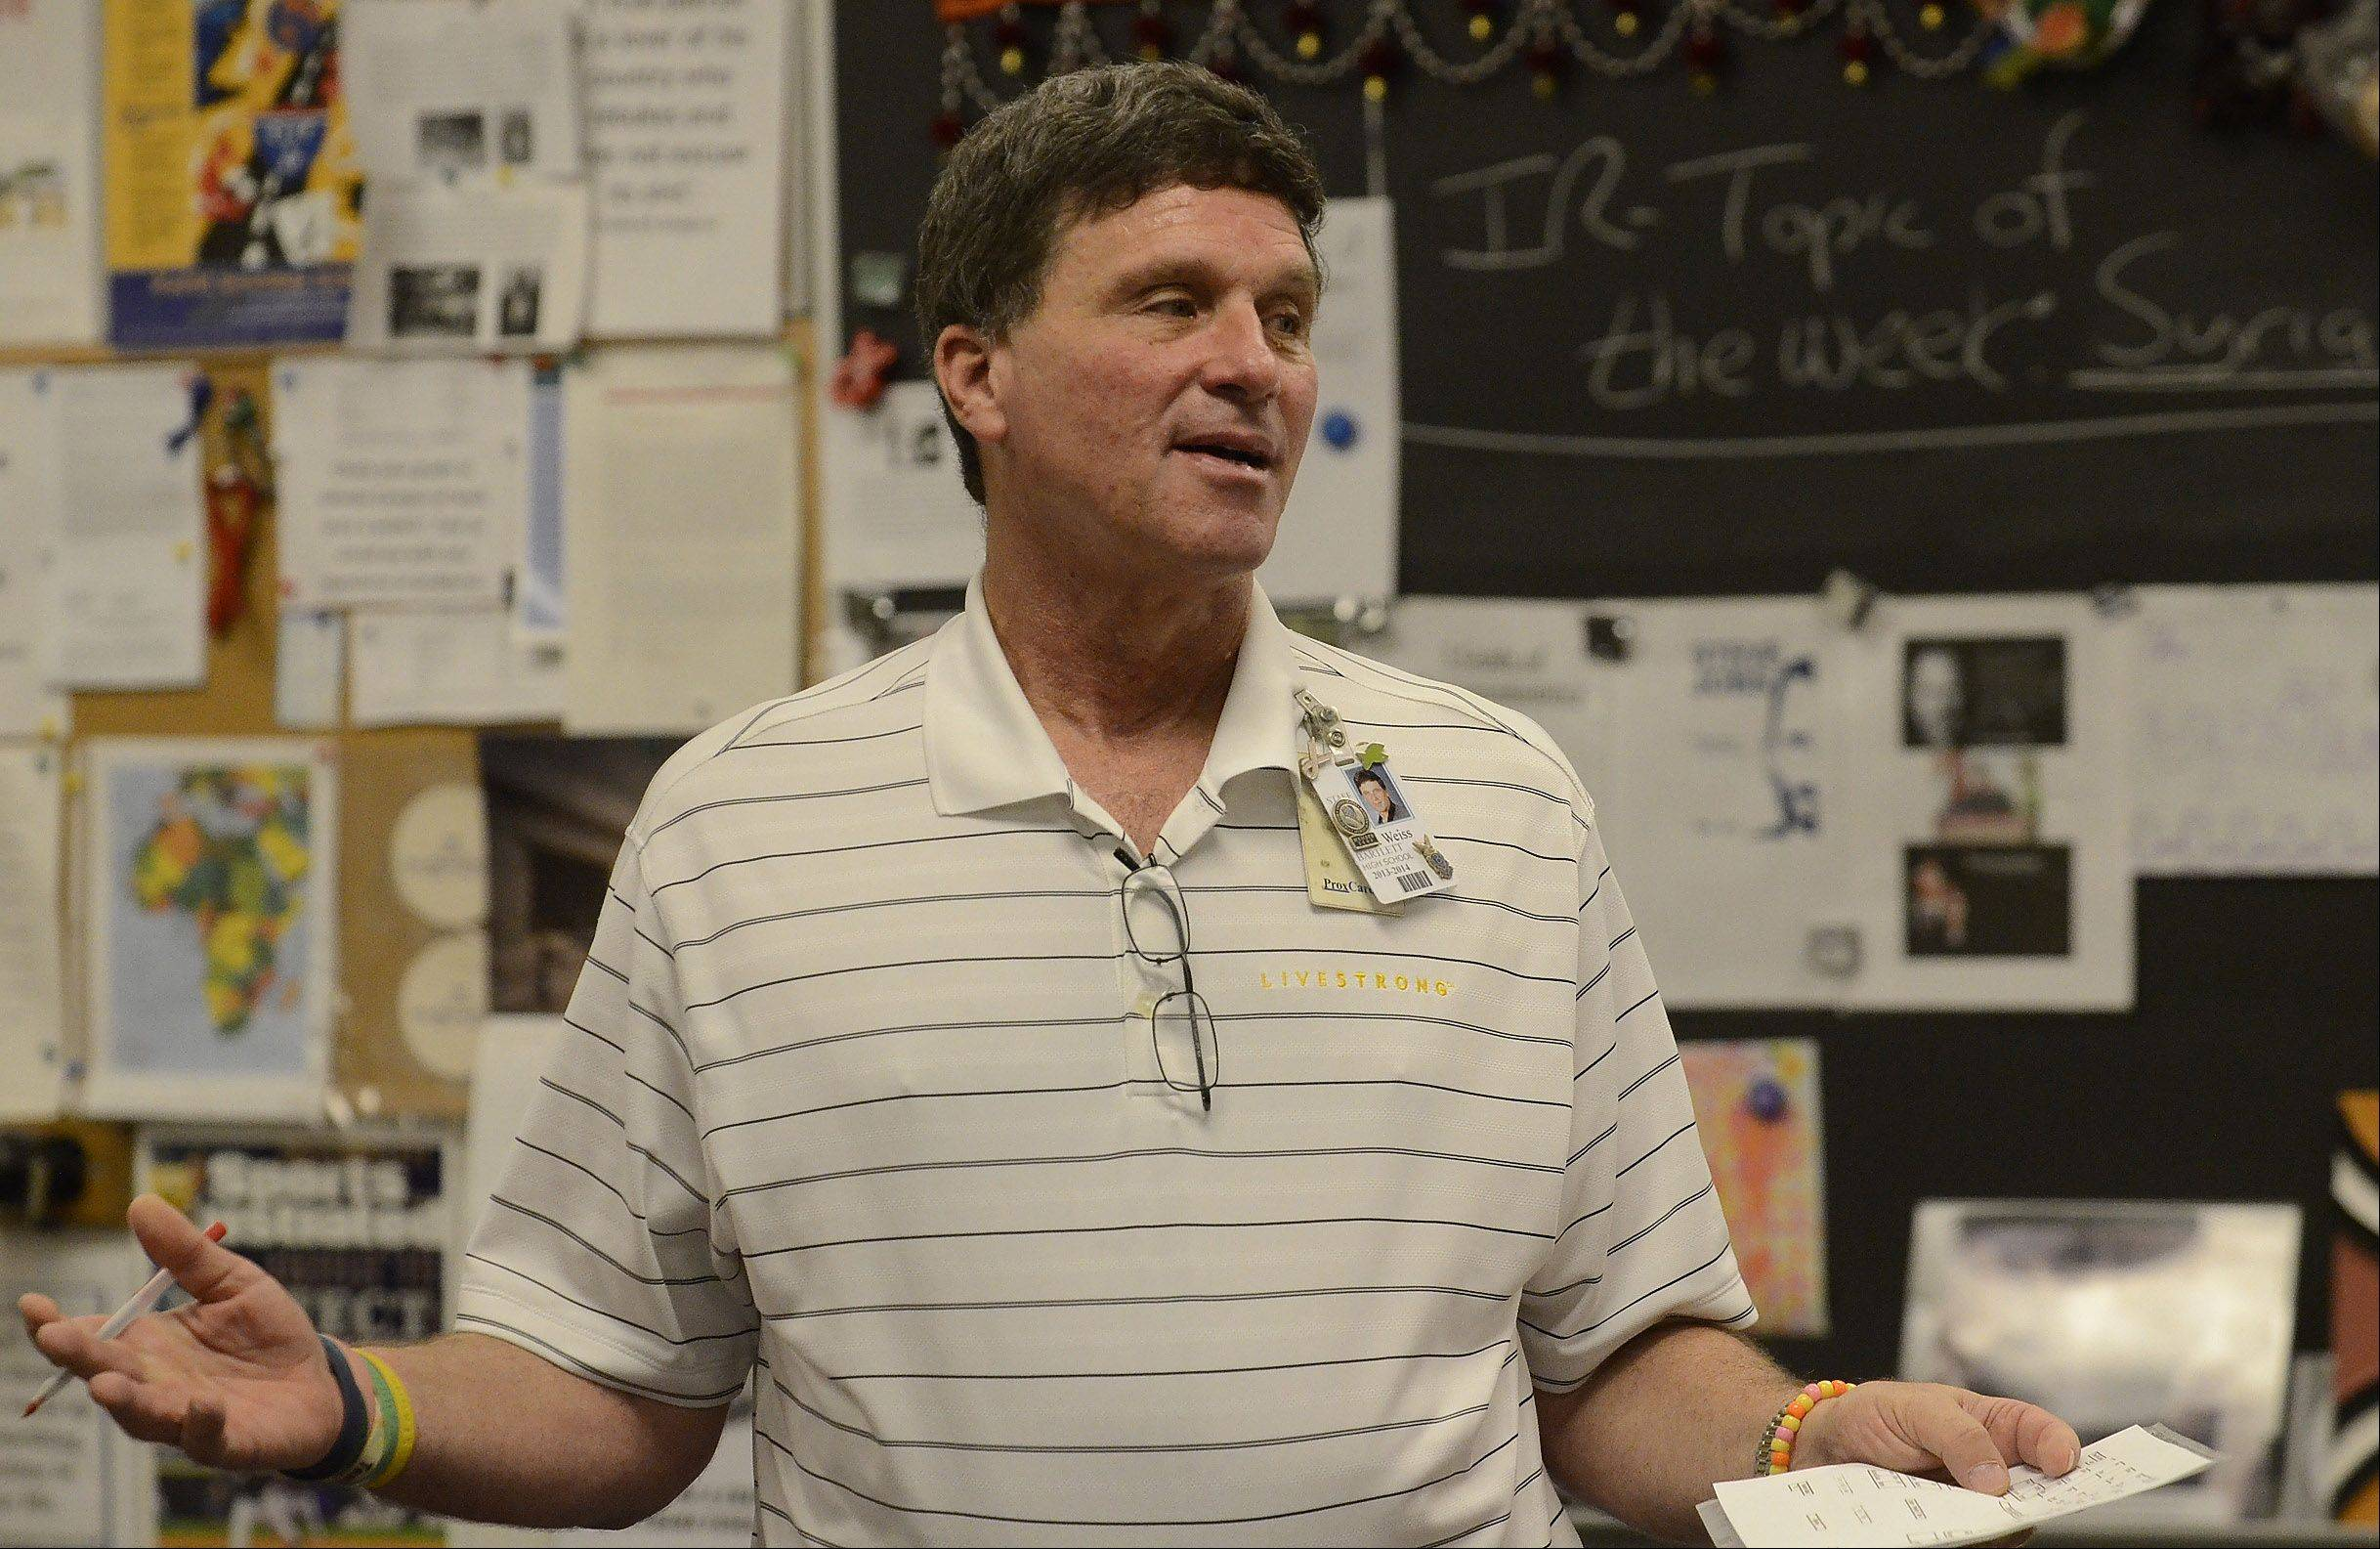 Bartlett High School students in teacher Brett Weiss' international relations classroom do more than passively take in the news of the world. Instead of being bystanders, some of the students have launched the Upstanders club, which gets involved in attempts to better difficult situations around the globe.